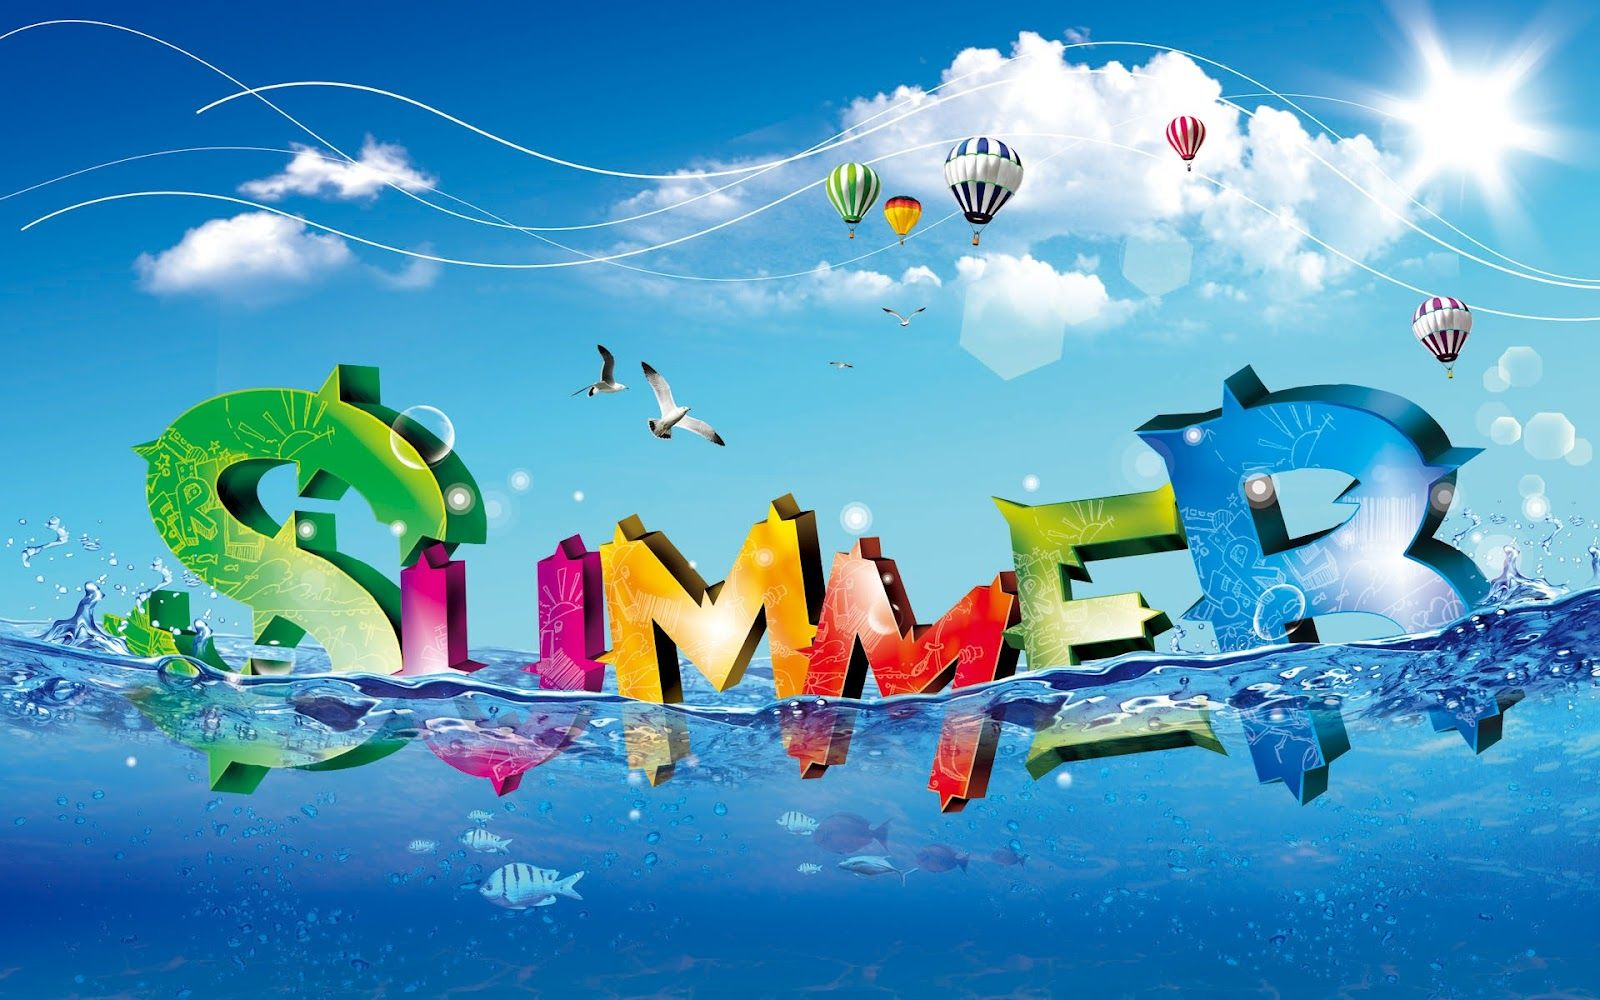 IT IS STILL NOT SUMMER HERE  But you have a Blessed day my  Friend :)